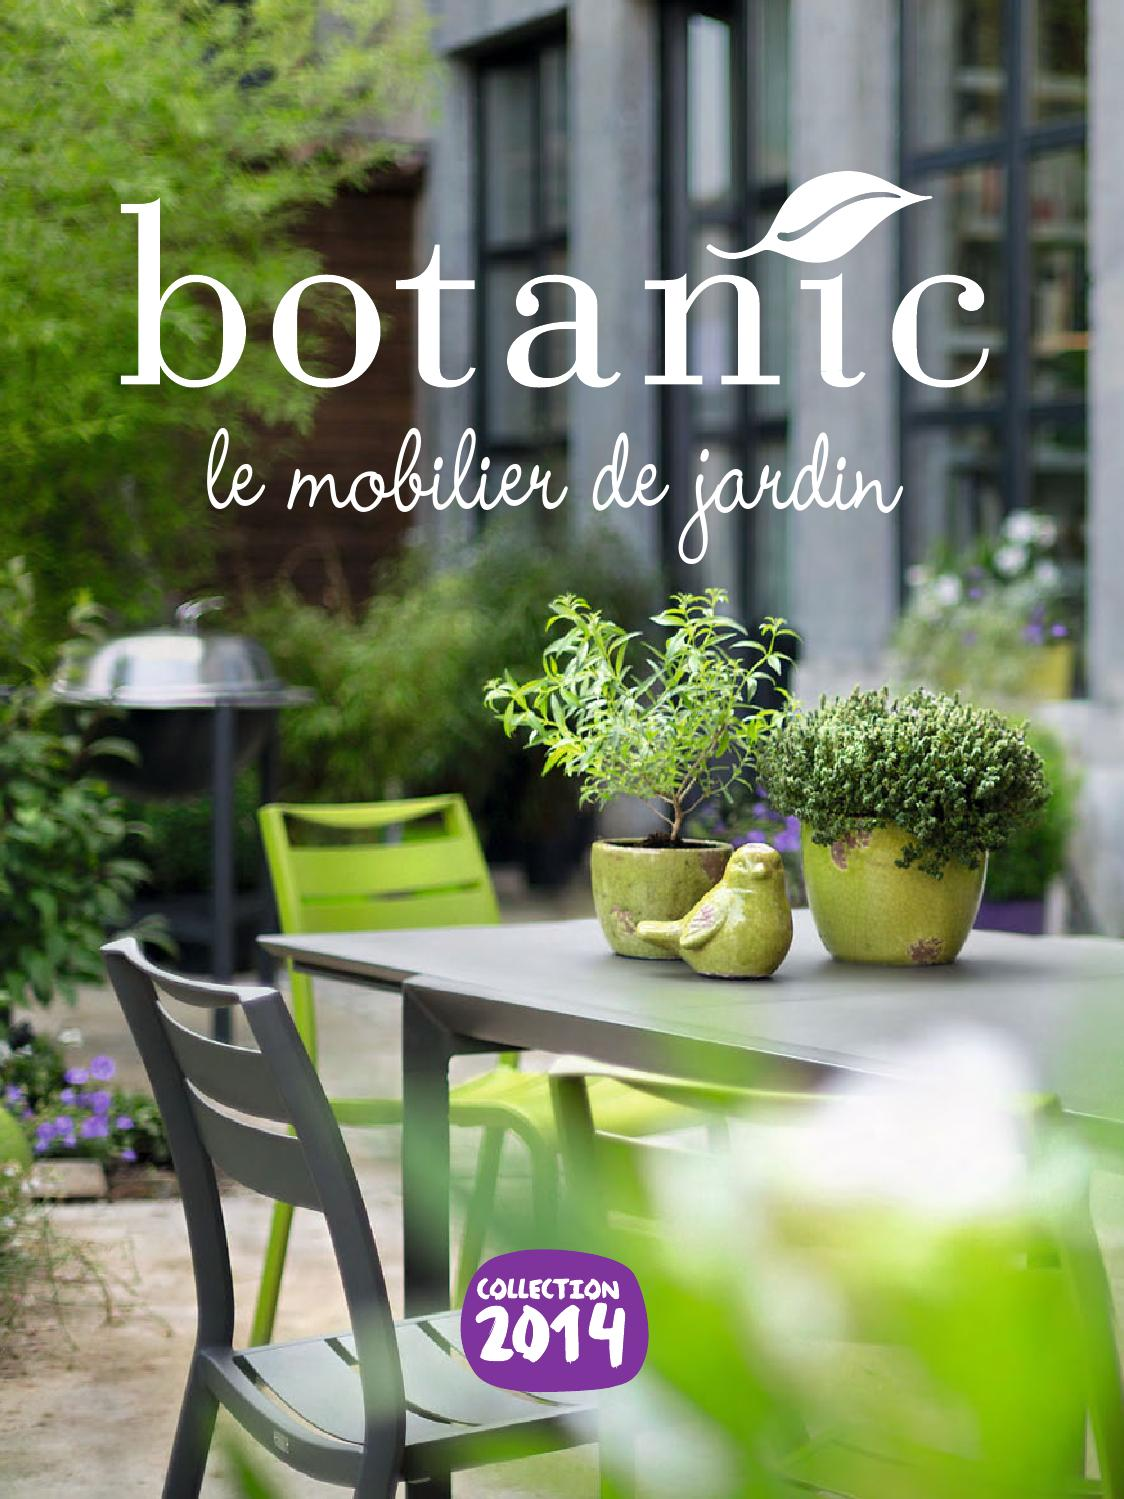 catalogue botanic le mobilier de jardin 2014 by joe monroe issuu. Black Bedroom Furniture Sets. Home Design Ideas